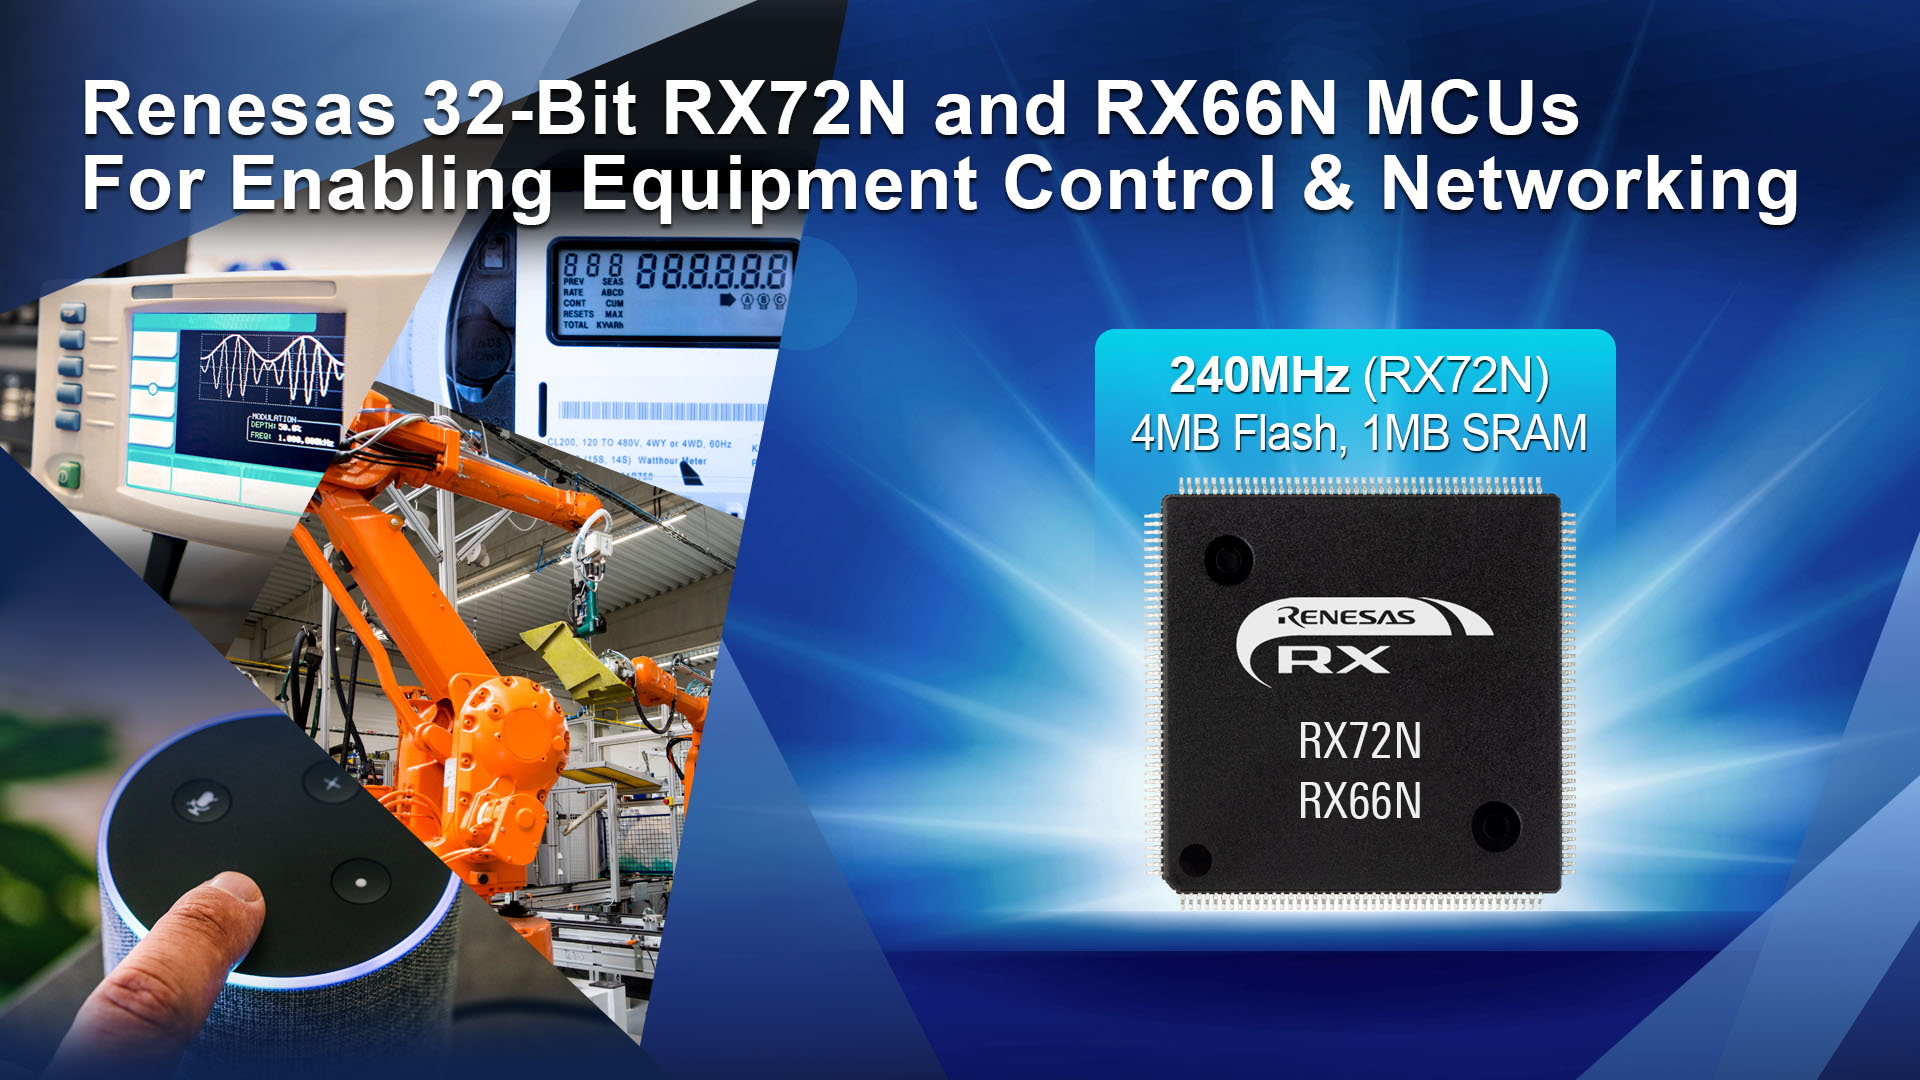 32-Bit MCUs Designed for Industrial Automation